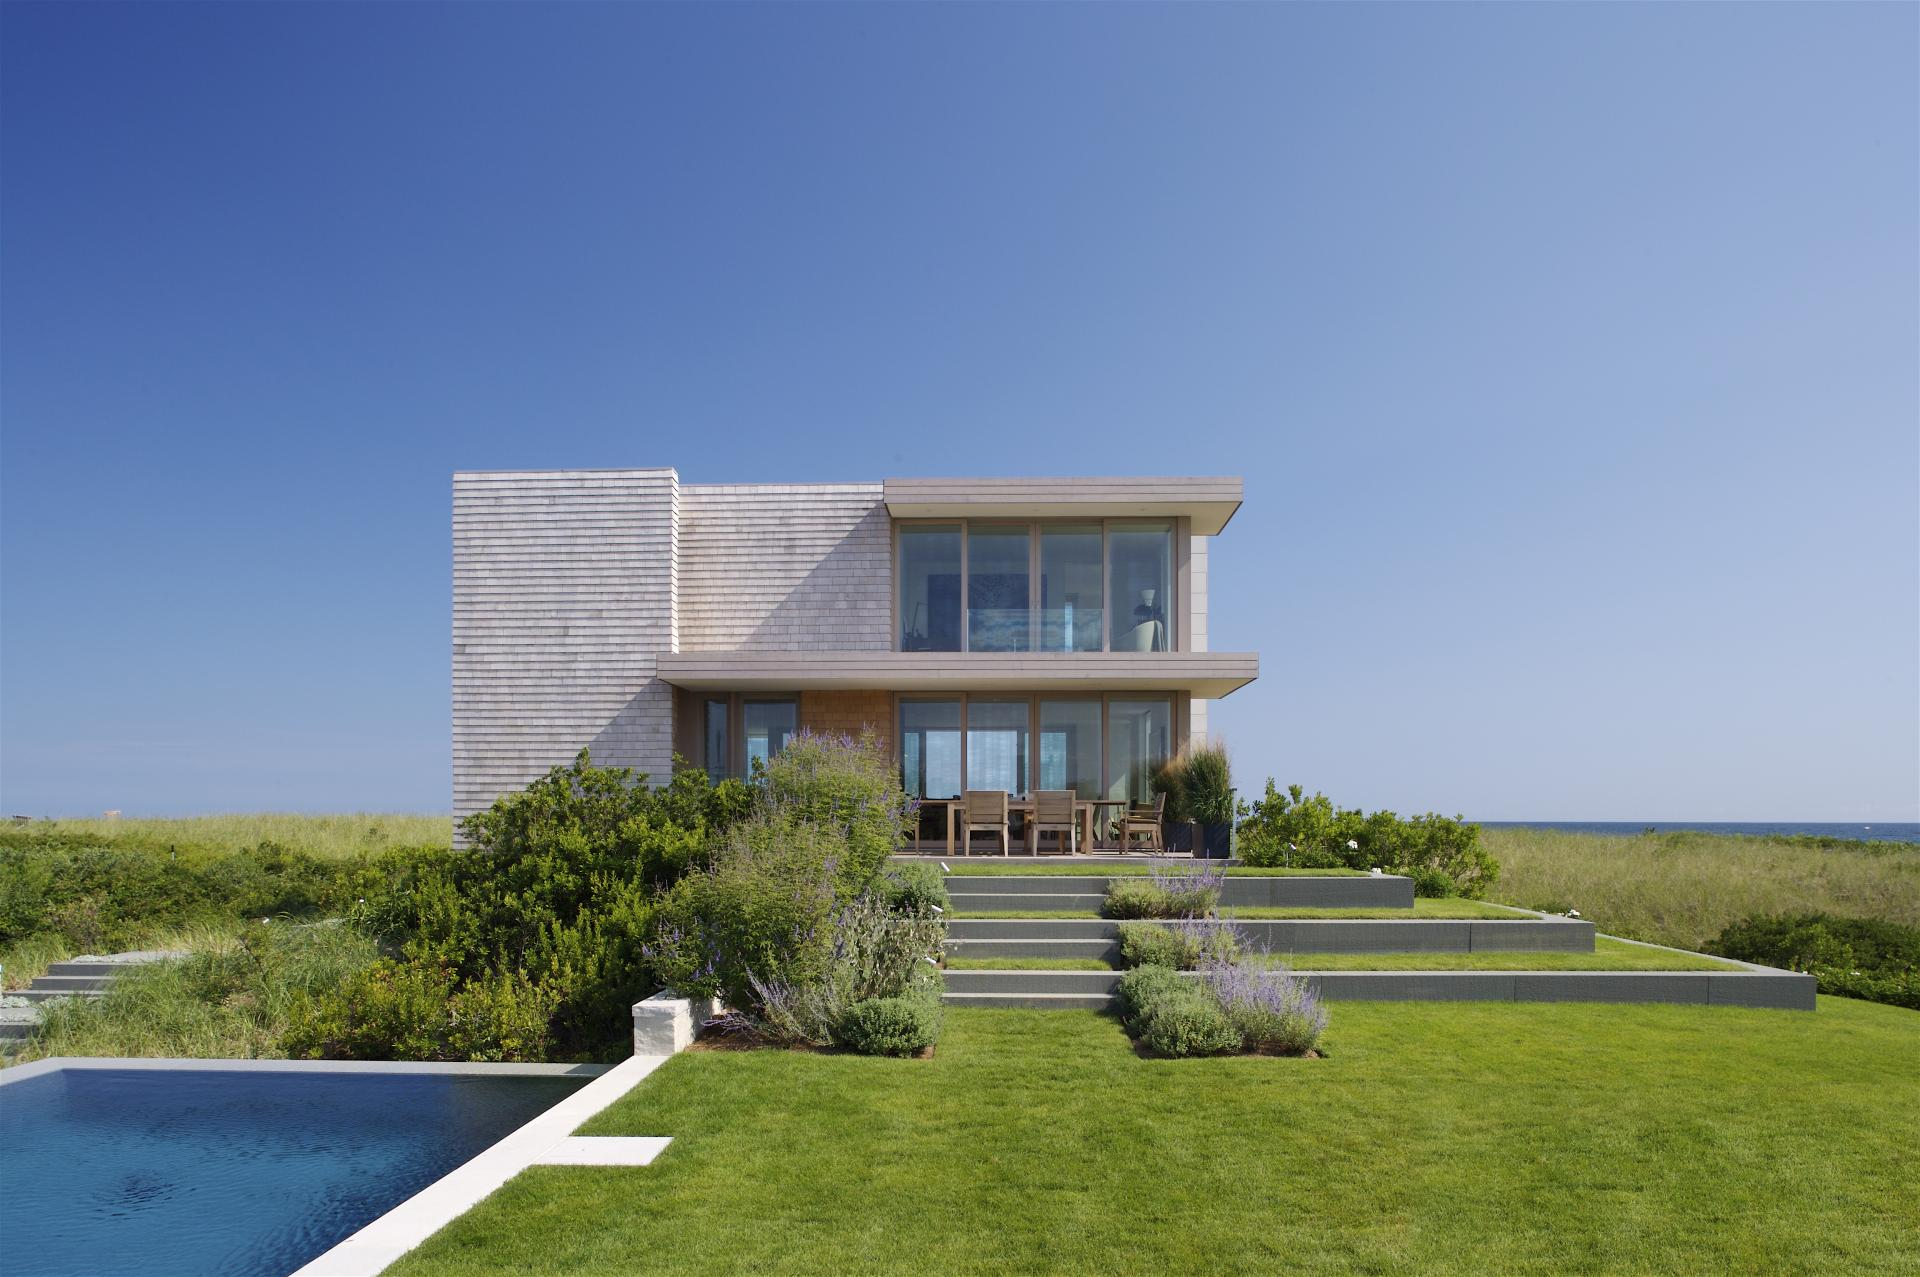 Dune Road Residence By Stelle Architects Homedezen